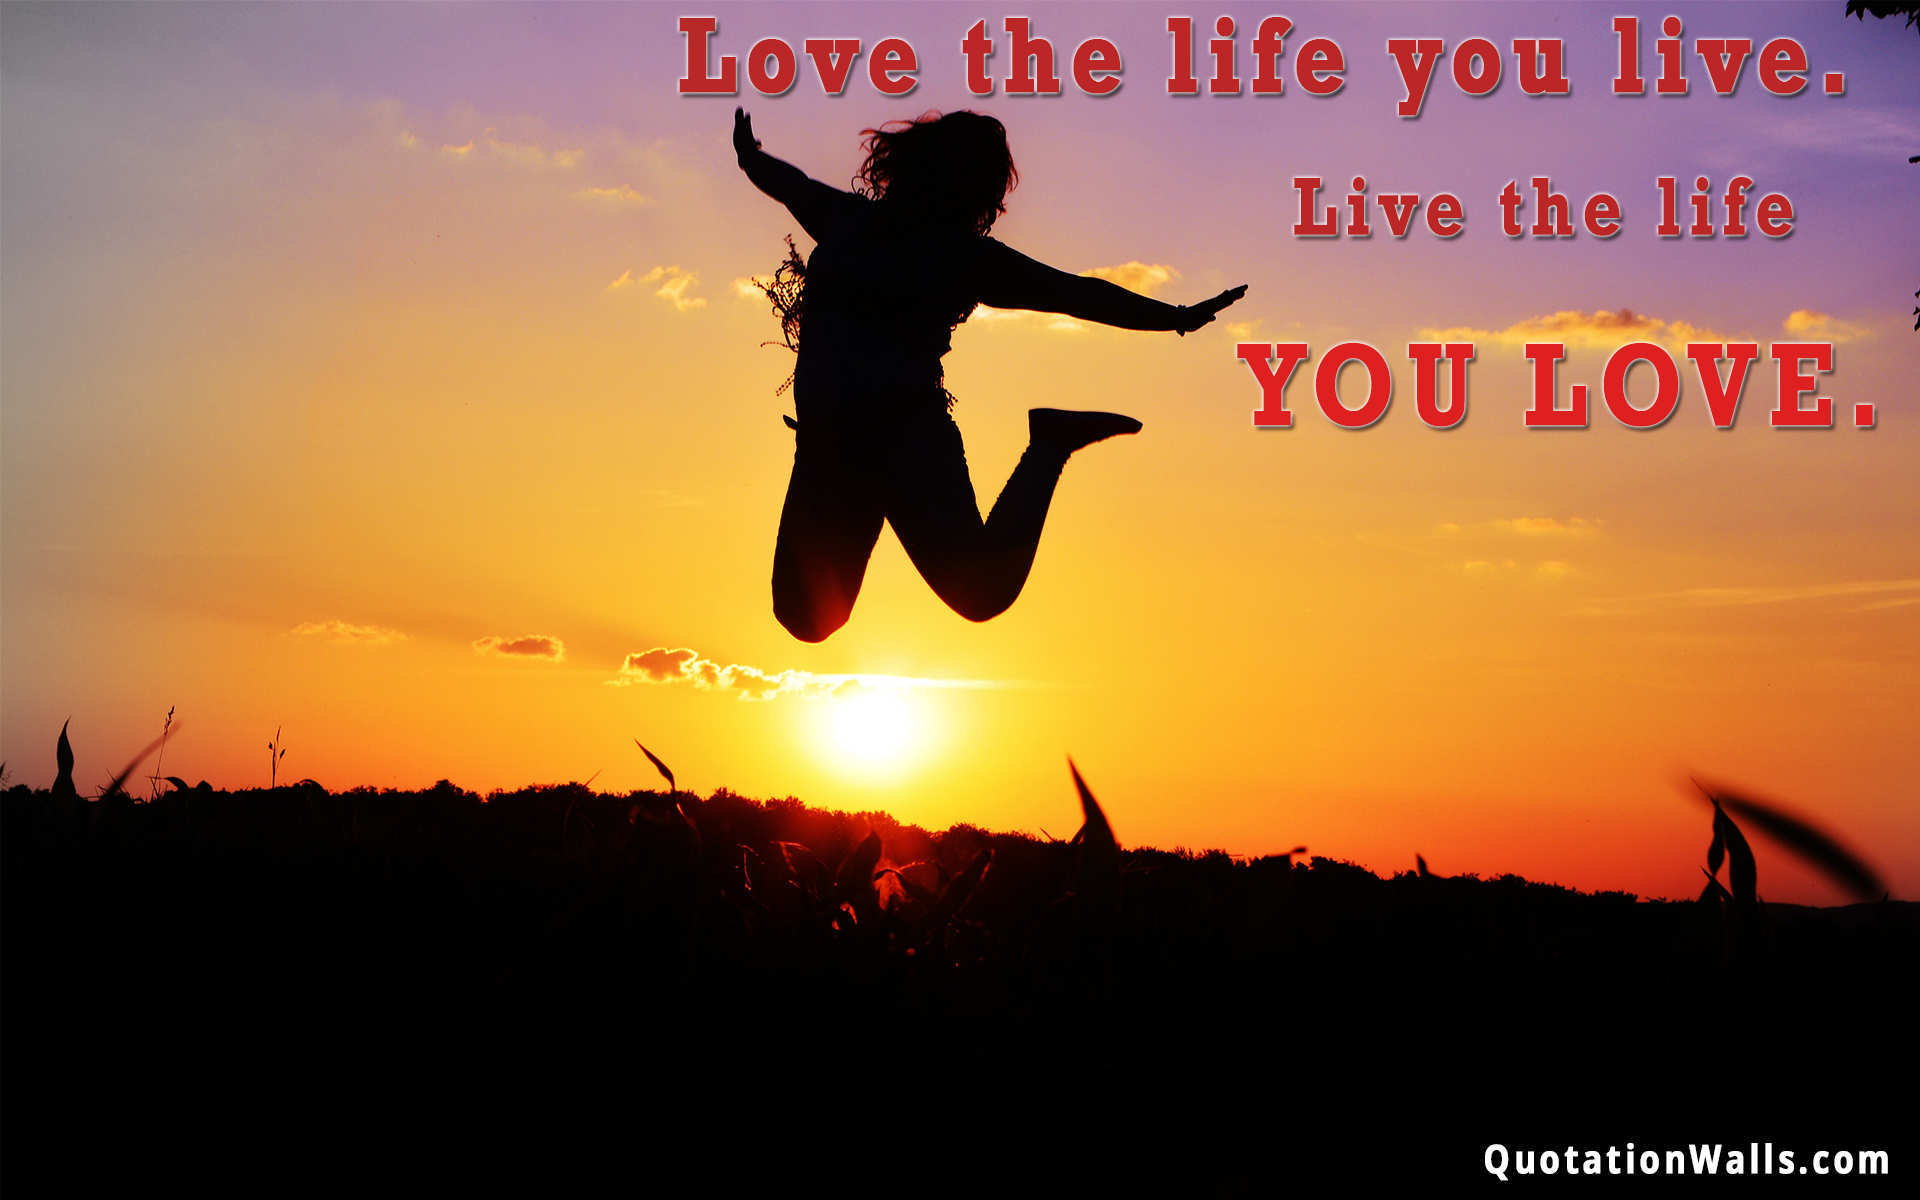 love life life wallpaper for desktop - quotationwalls